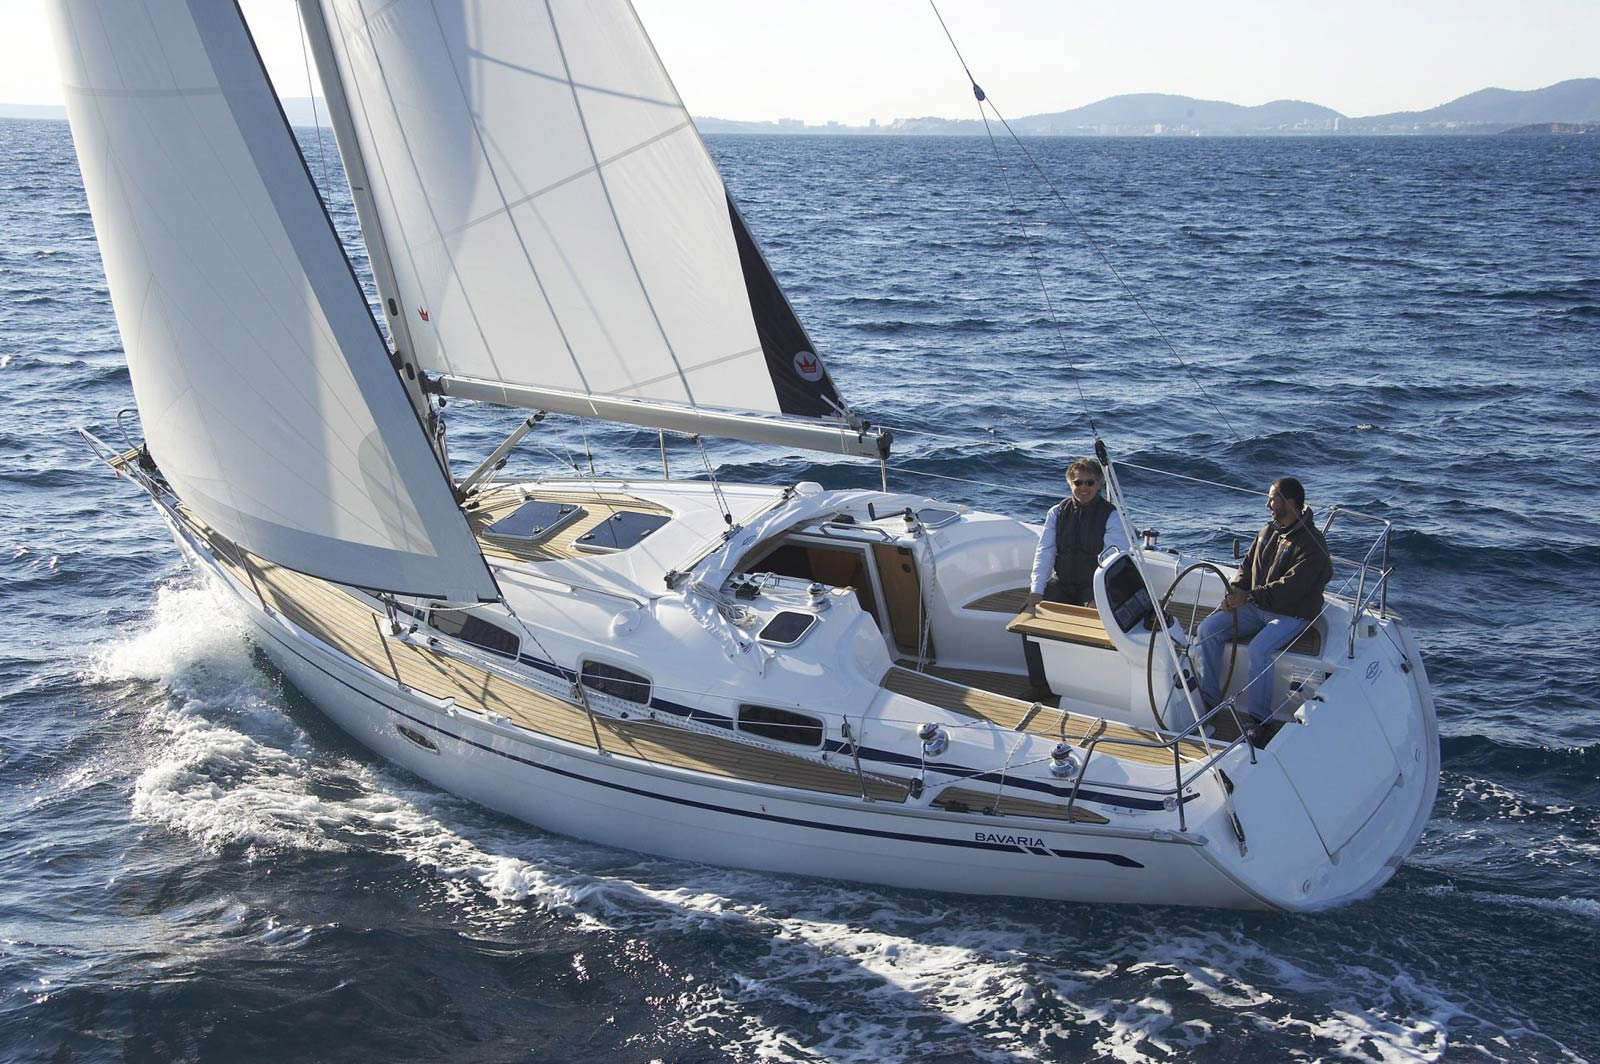 Bavaria 38 Cruiser Economy - Sailing Yacht for Charter in Greece